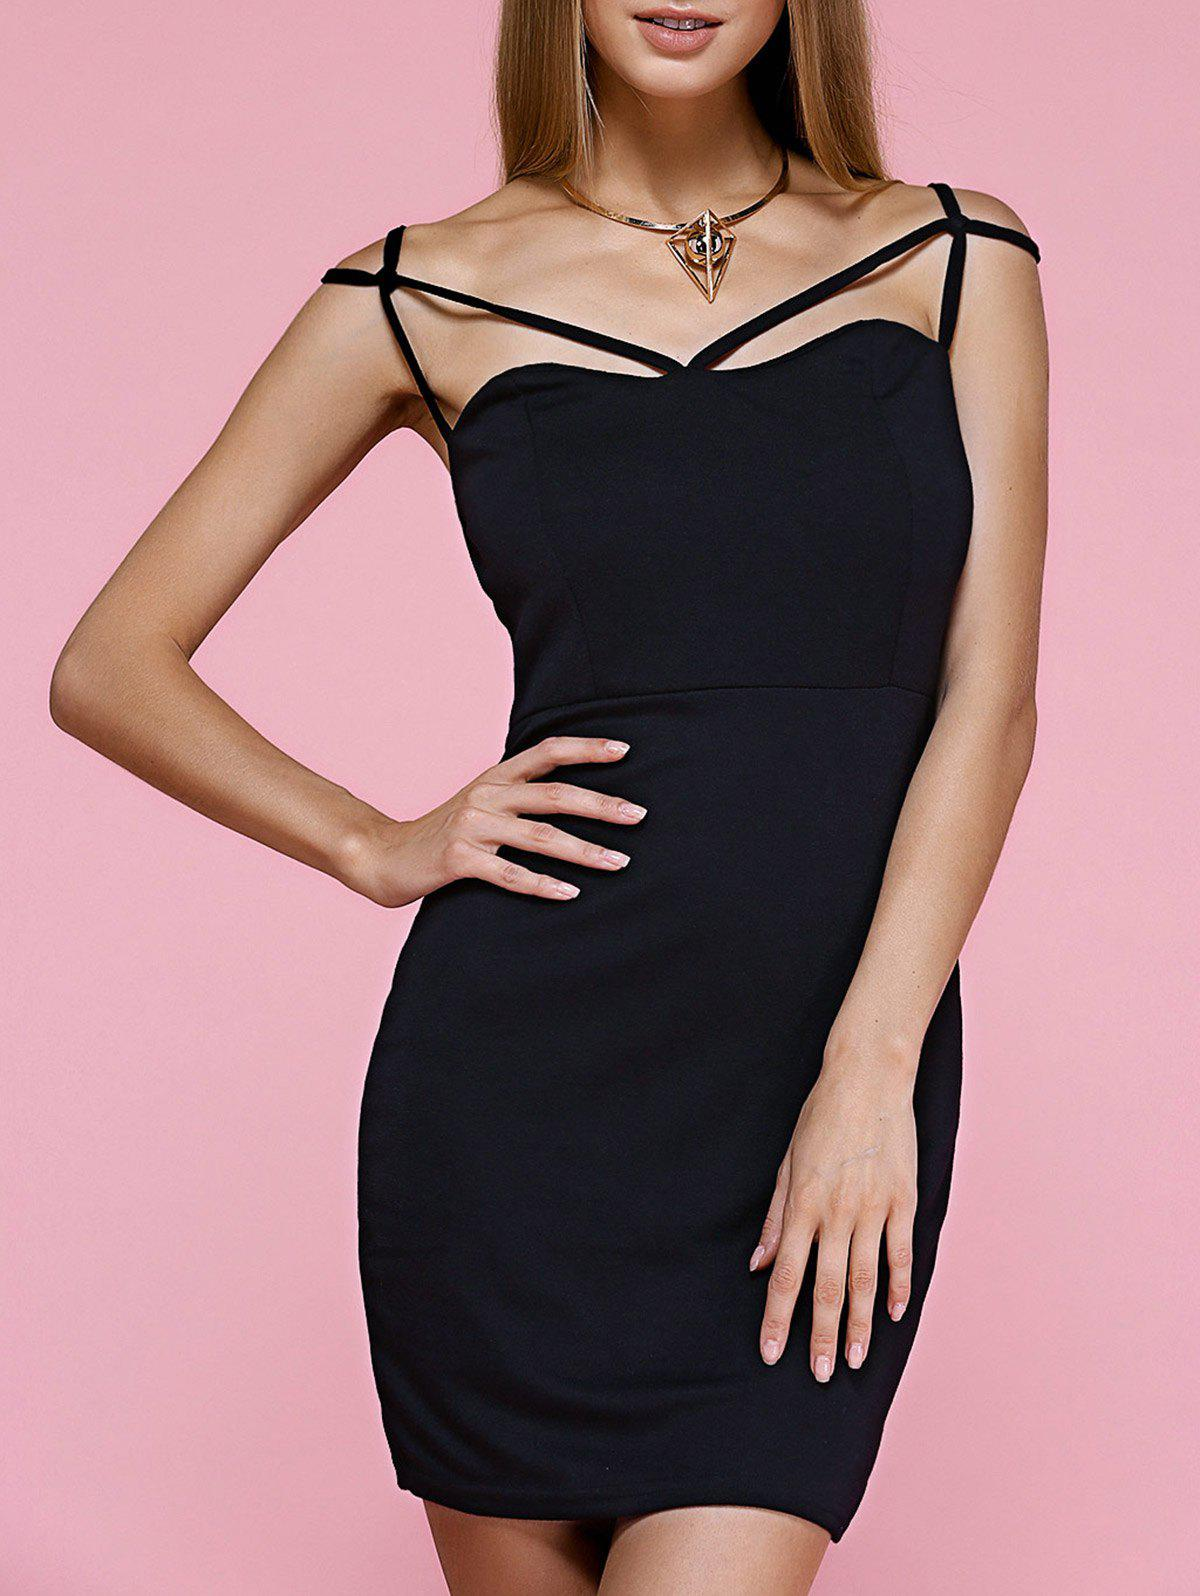 Alluring Spaghetti Strap Criss Cross Black Dress For Women - BLACK S